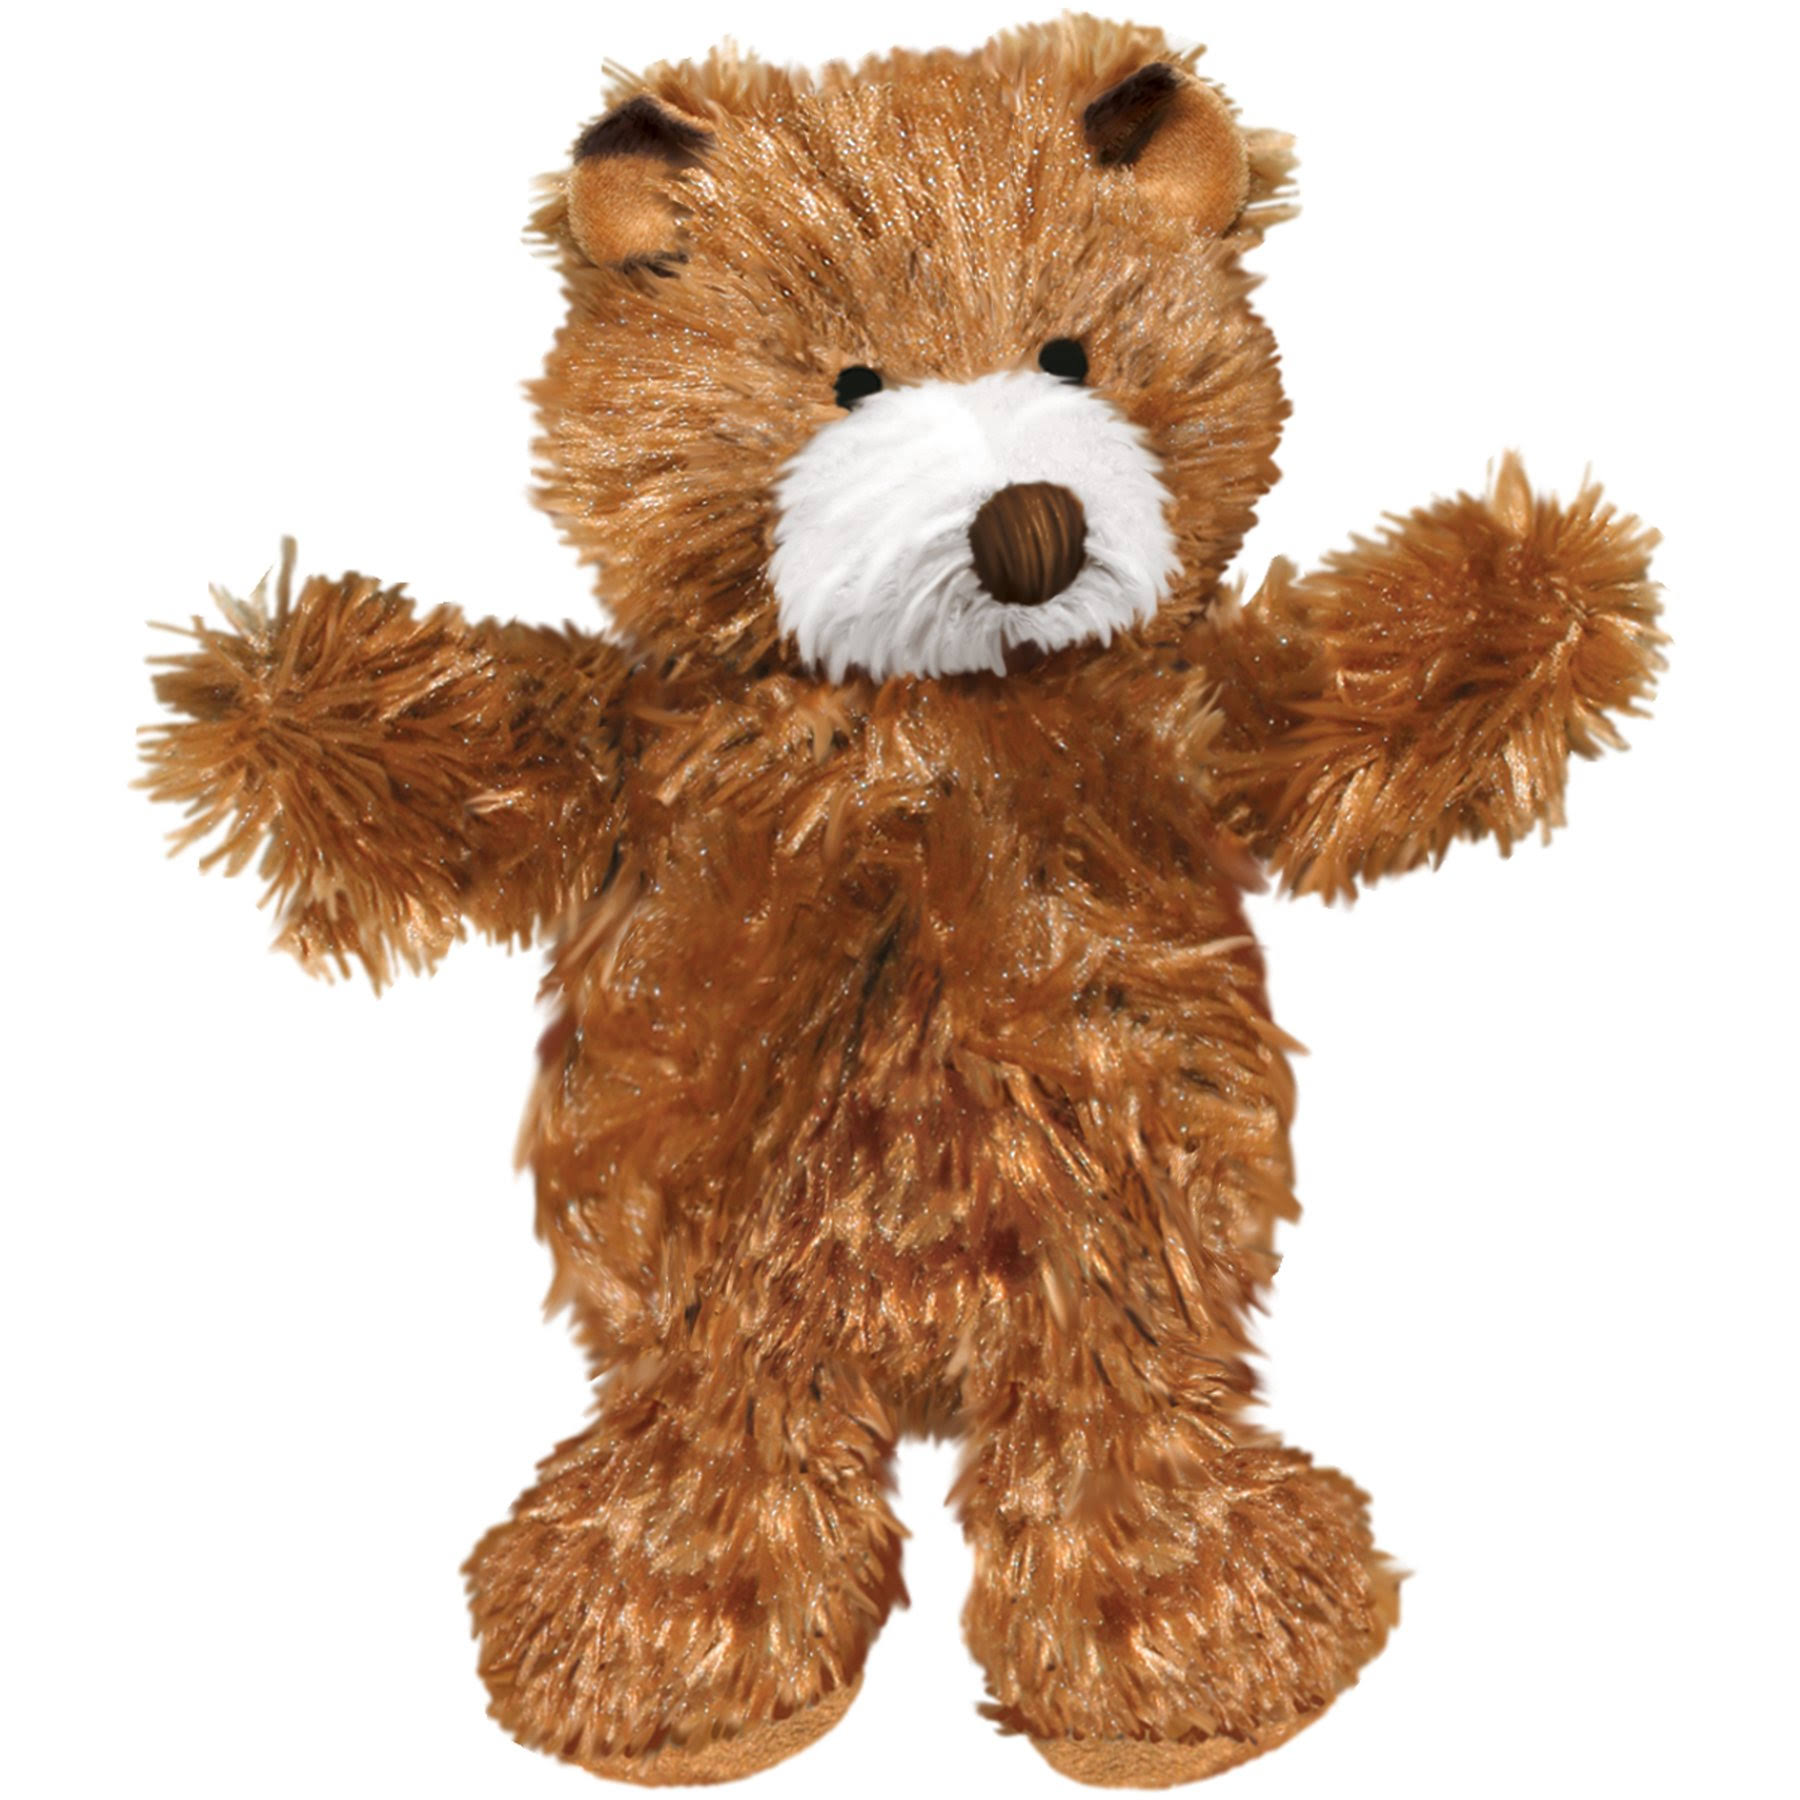 Kong Dr. Noys Plush Dog Toy - Teddy Bear, Medium